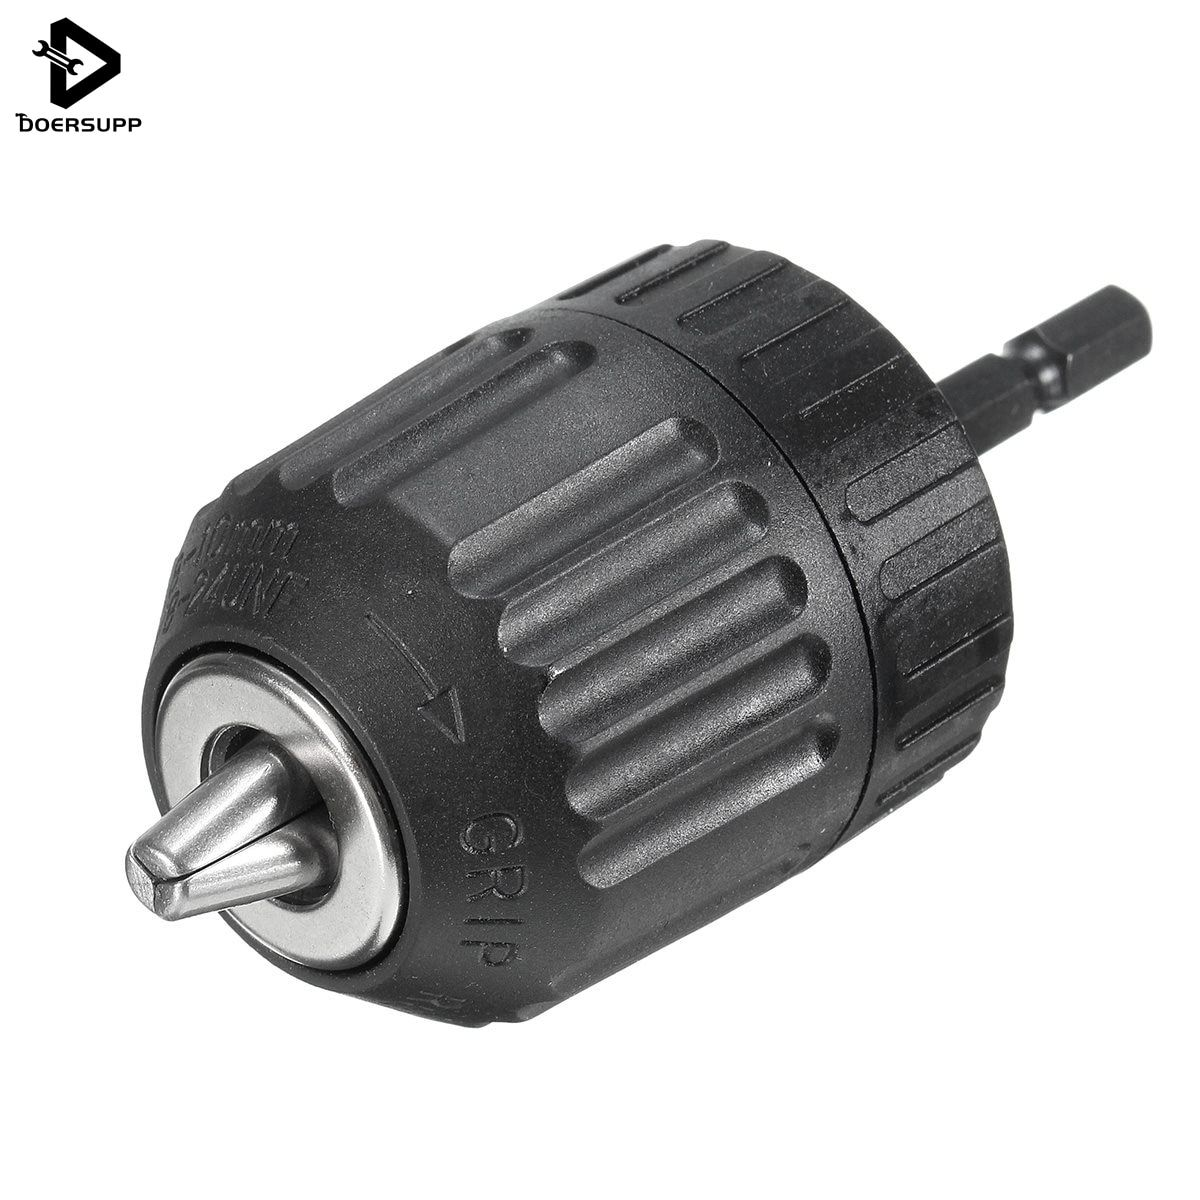 Top Quality 1PC 0.8-10mm Keyless Drill Chuck Converter 3/8